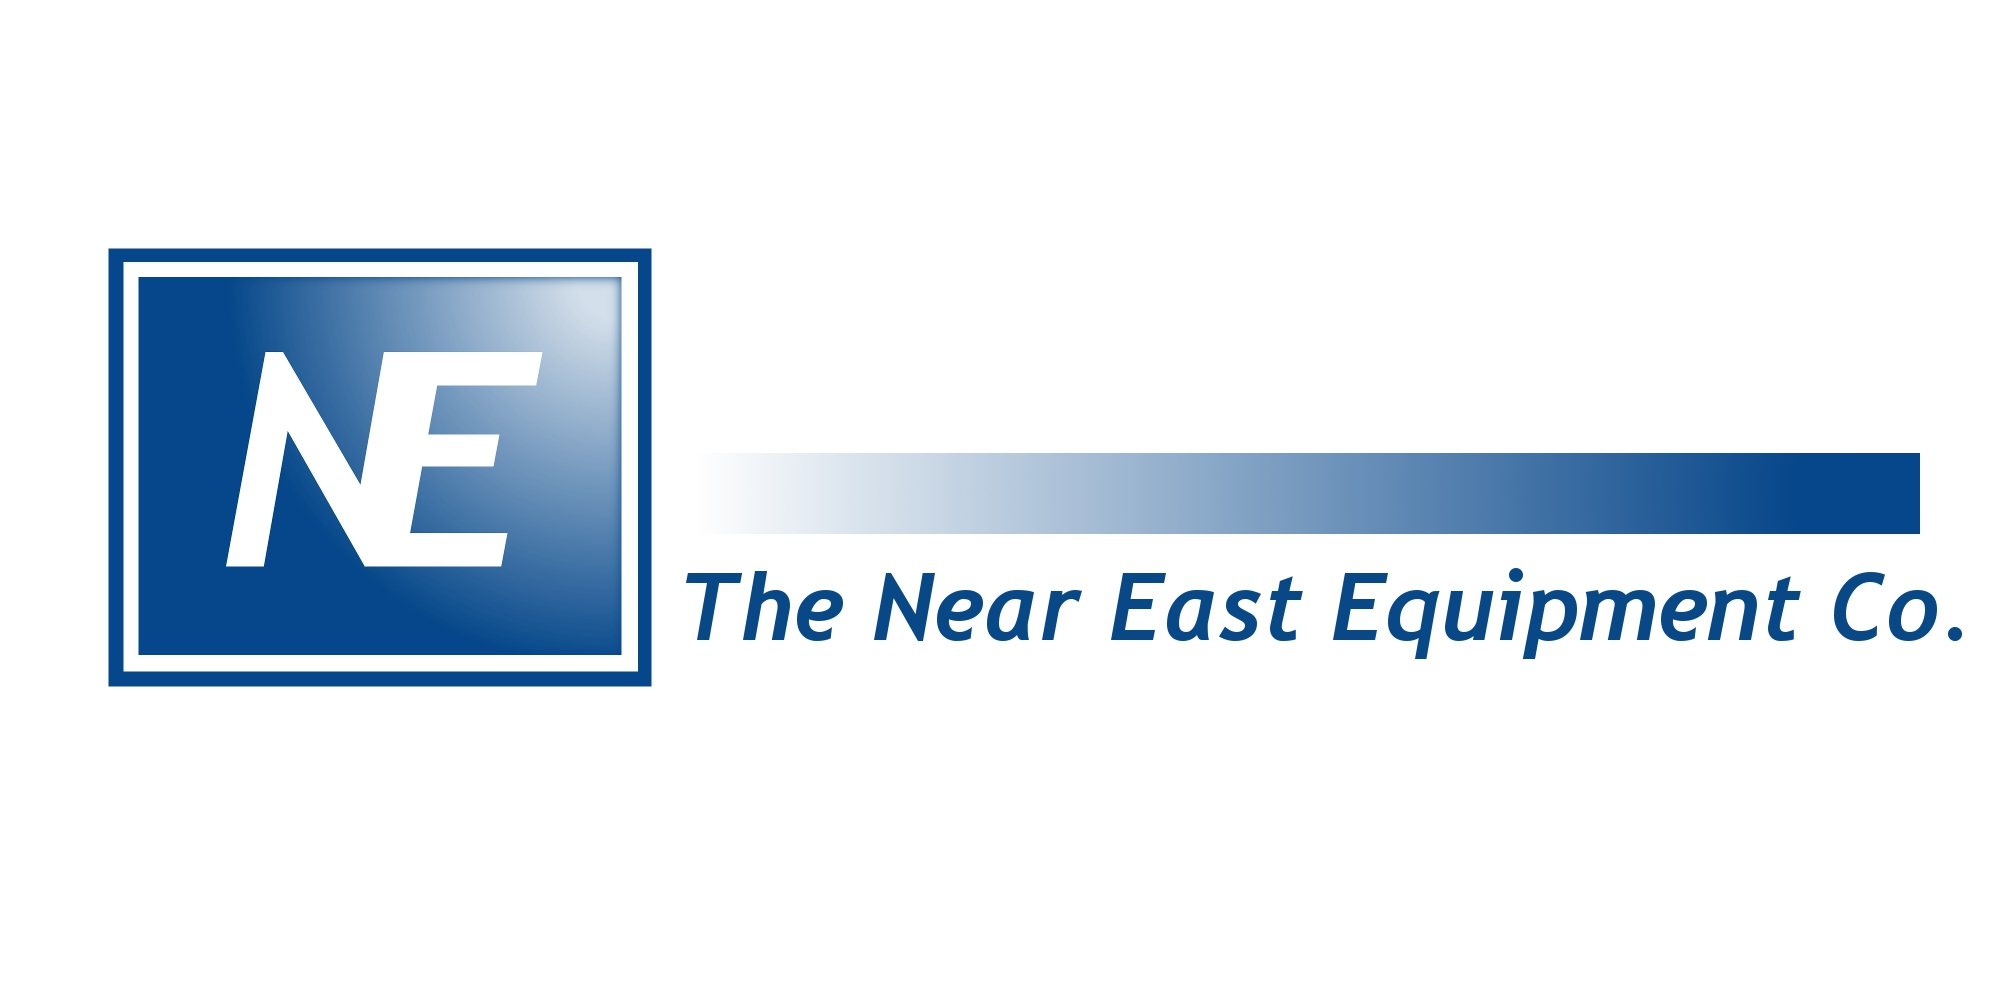 Logo Design by dallywopper - Entry No. 144 in the Logo Design Contest Imaginative Logo Design for The Near East Equipment Co..